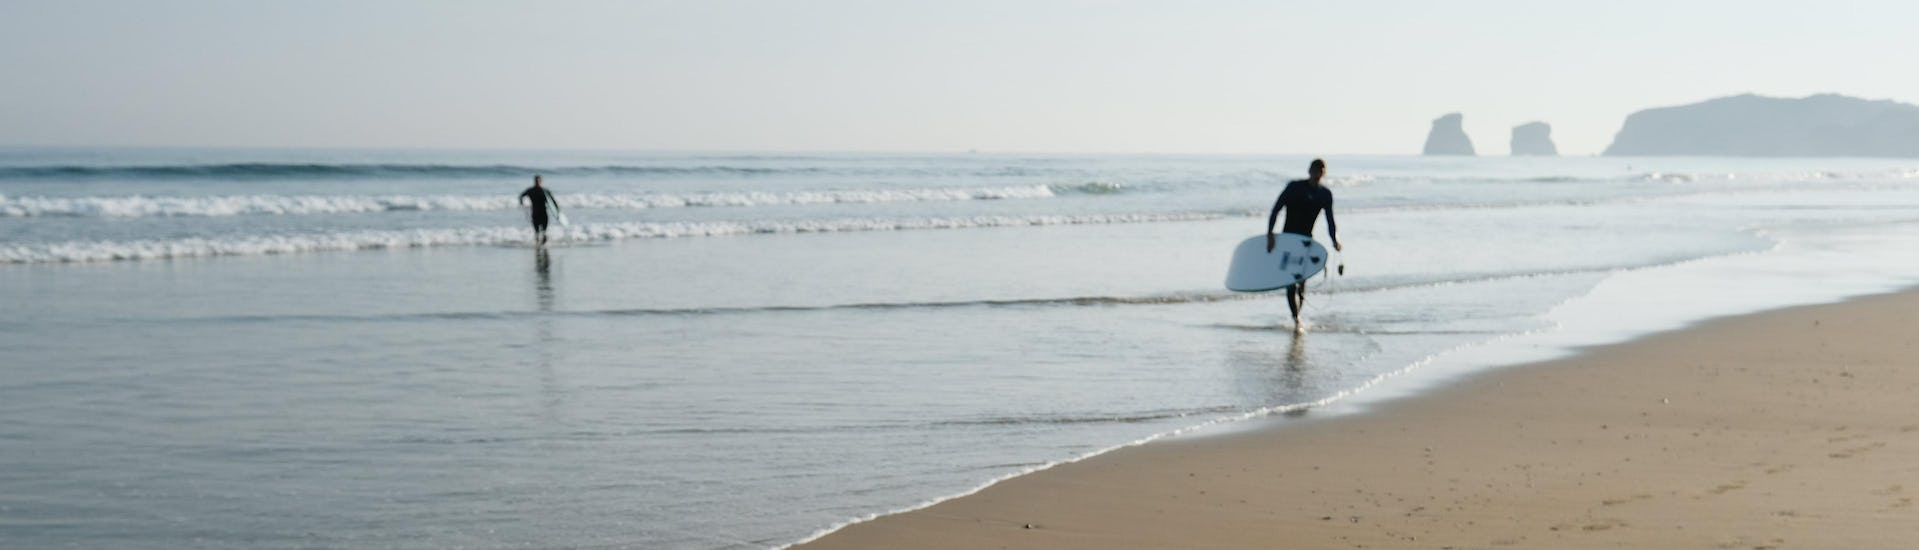 A surfer is walking on the beach of Hendaye in the early morning, one of the best places to take surfing lessons in the Basque Country.